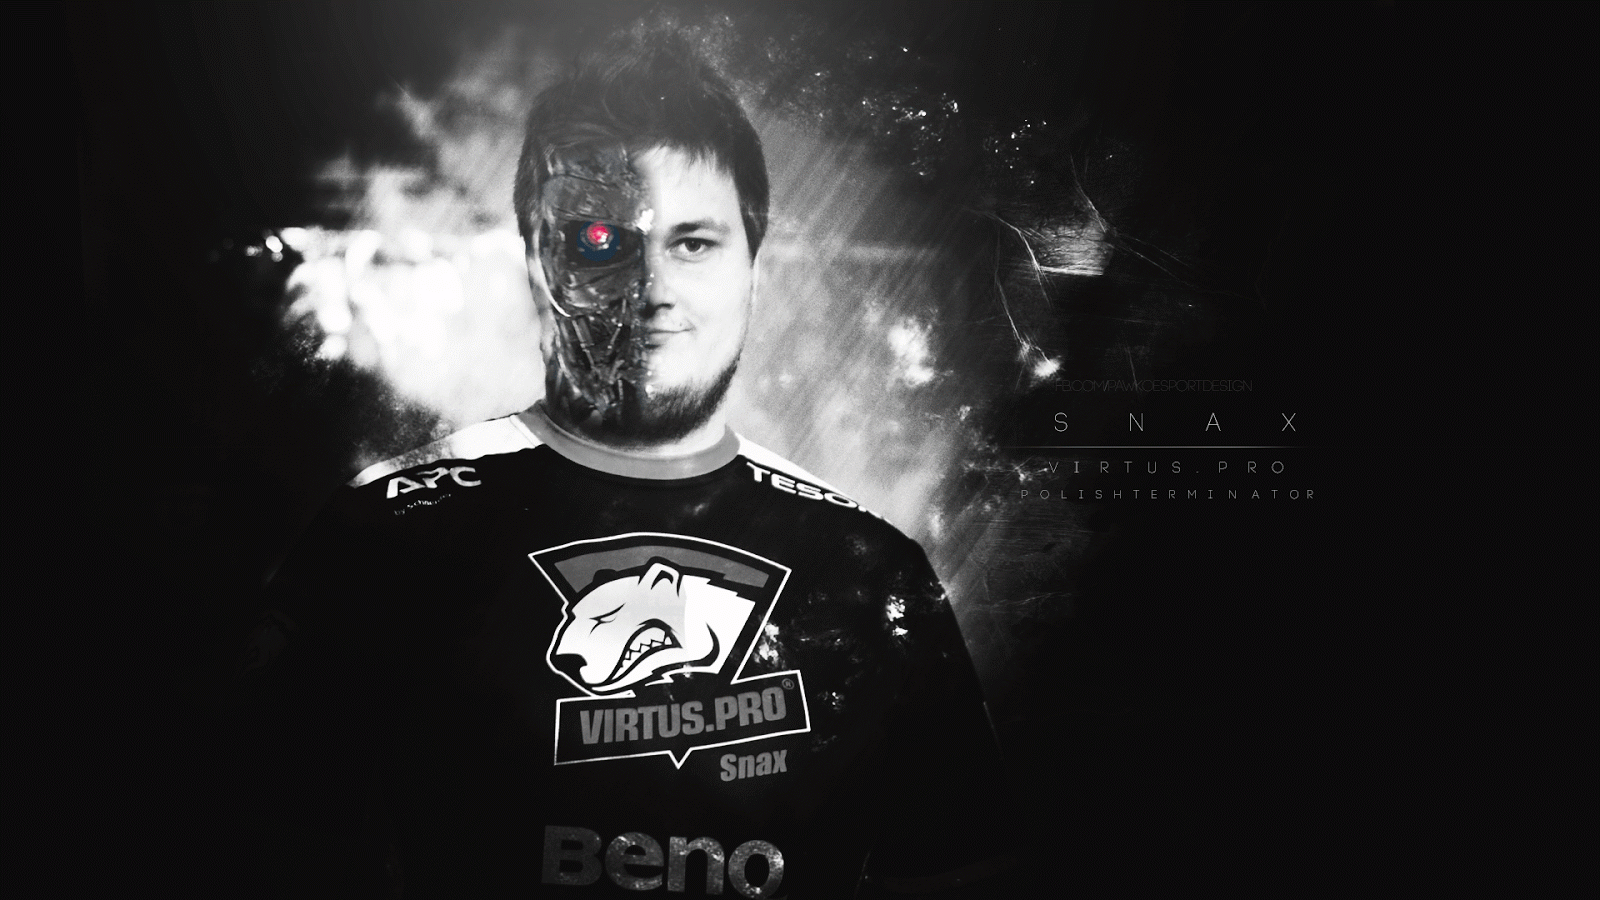 Snax CS:GO wallpaper 1600x900